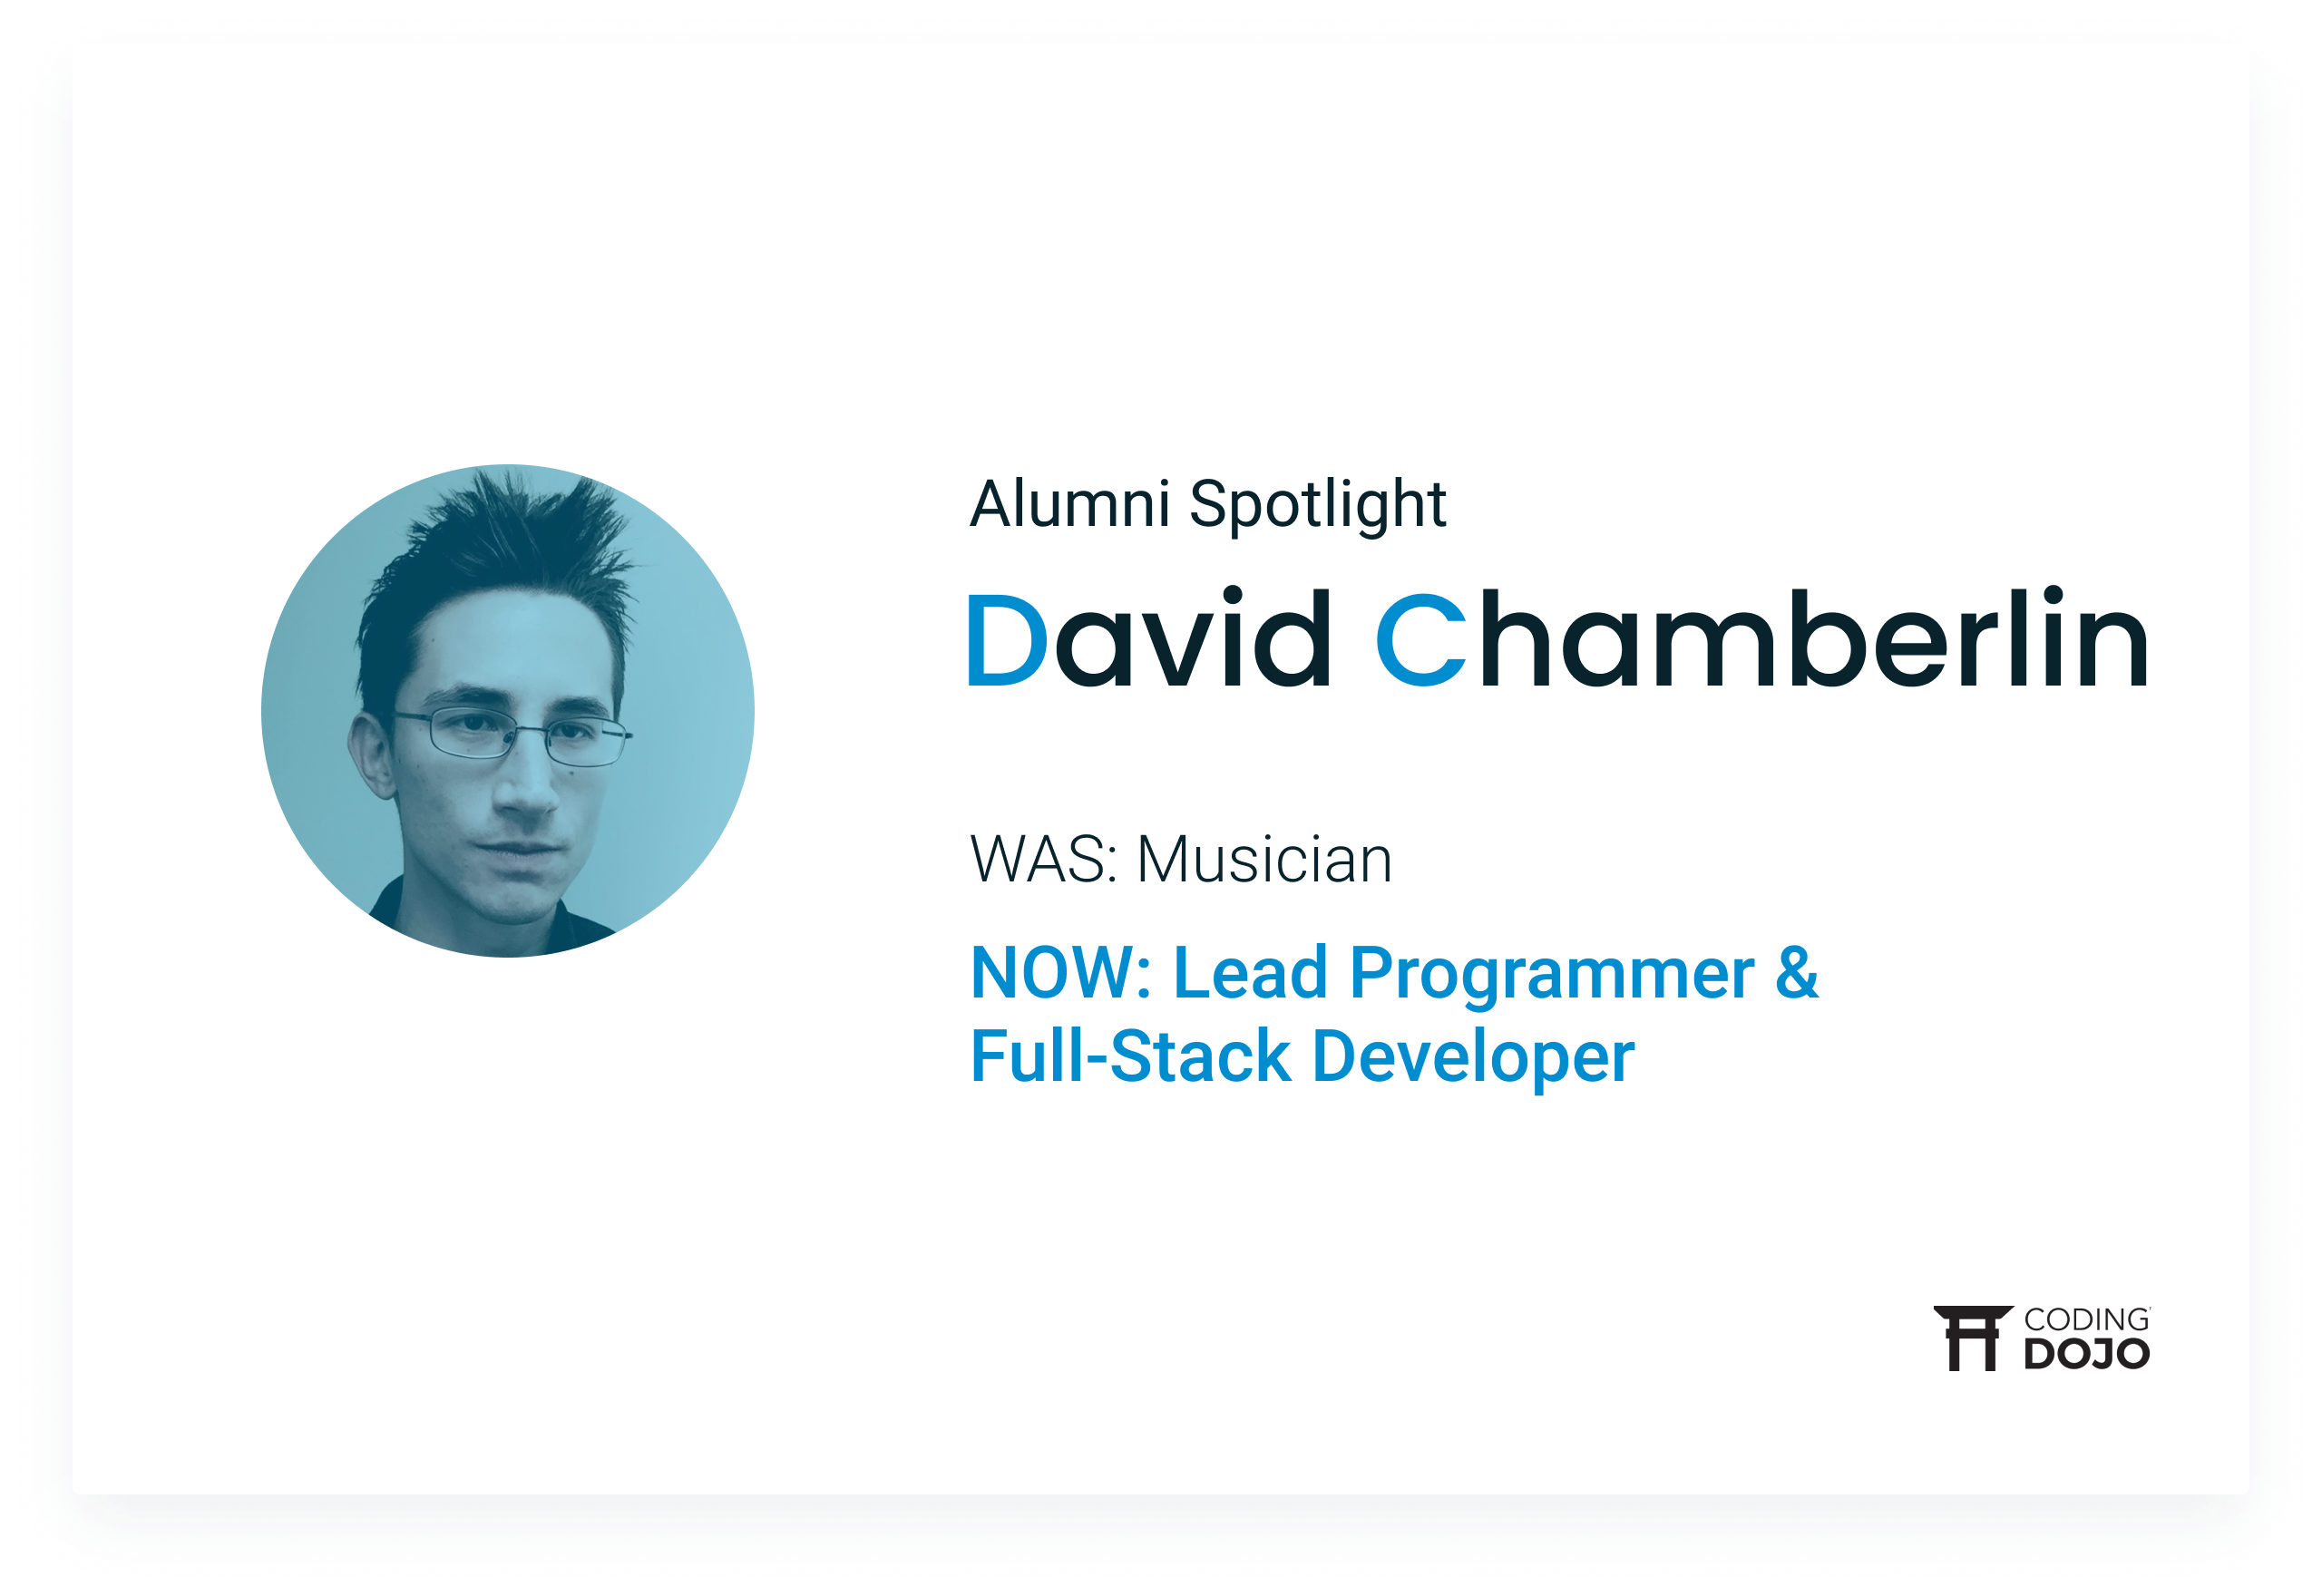 From Crafting Songs to Crafting Code | How LA Alumni David Chamberlin Followed His Passion to a New Career